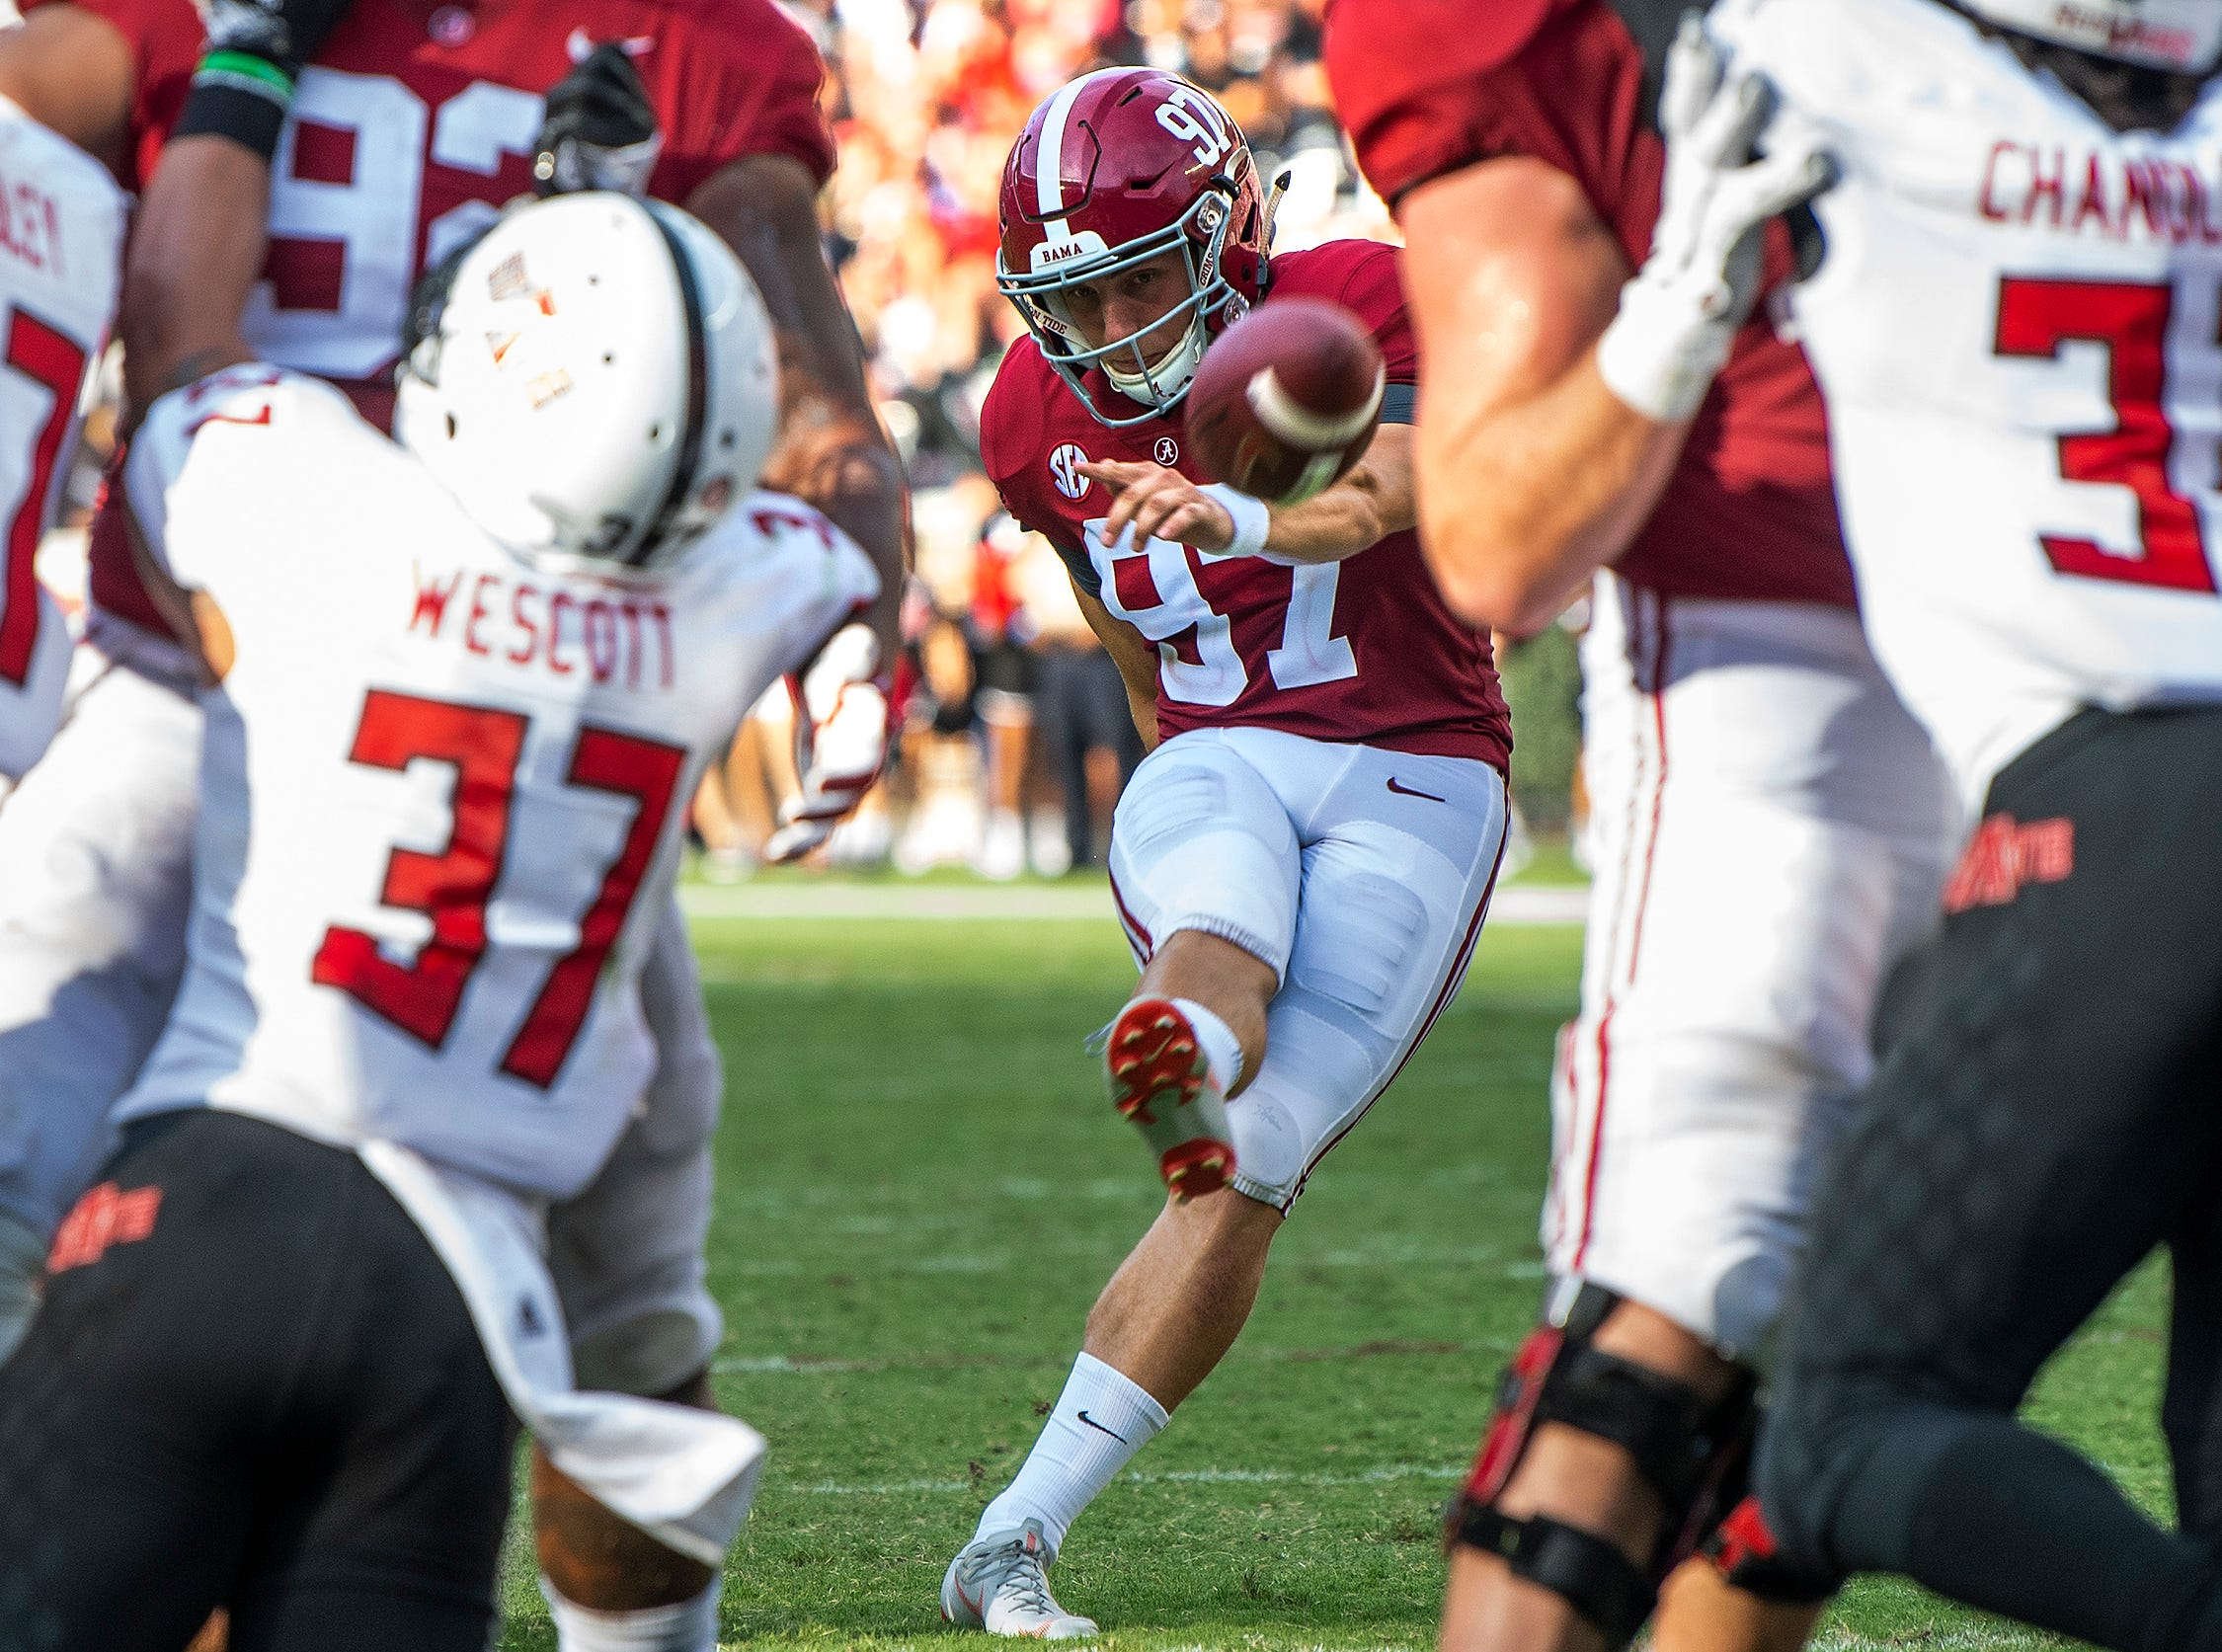 Alabama kicker Joseph Bulovas (97) kicks an extra point against Arkansas State in second half action at Bryant Denny Stadium in Tuscaloosa, Ala., on Saturday September 8, 2018.